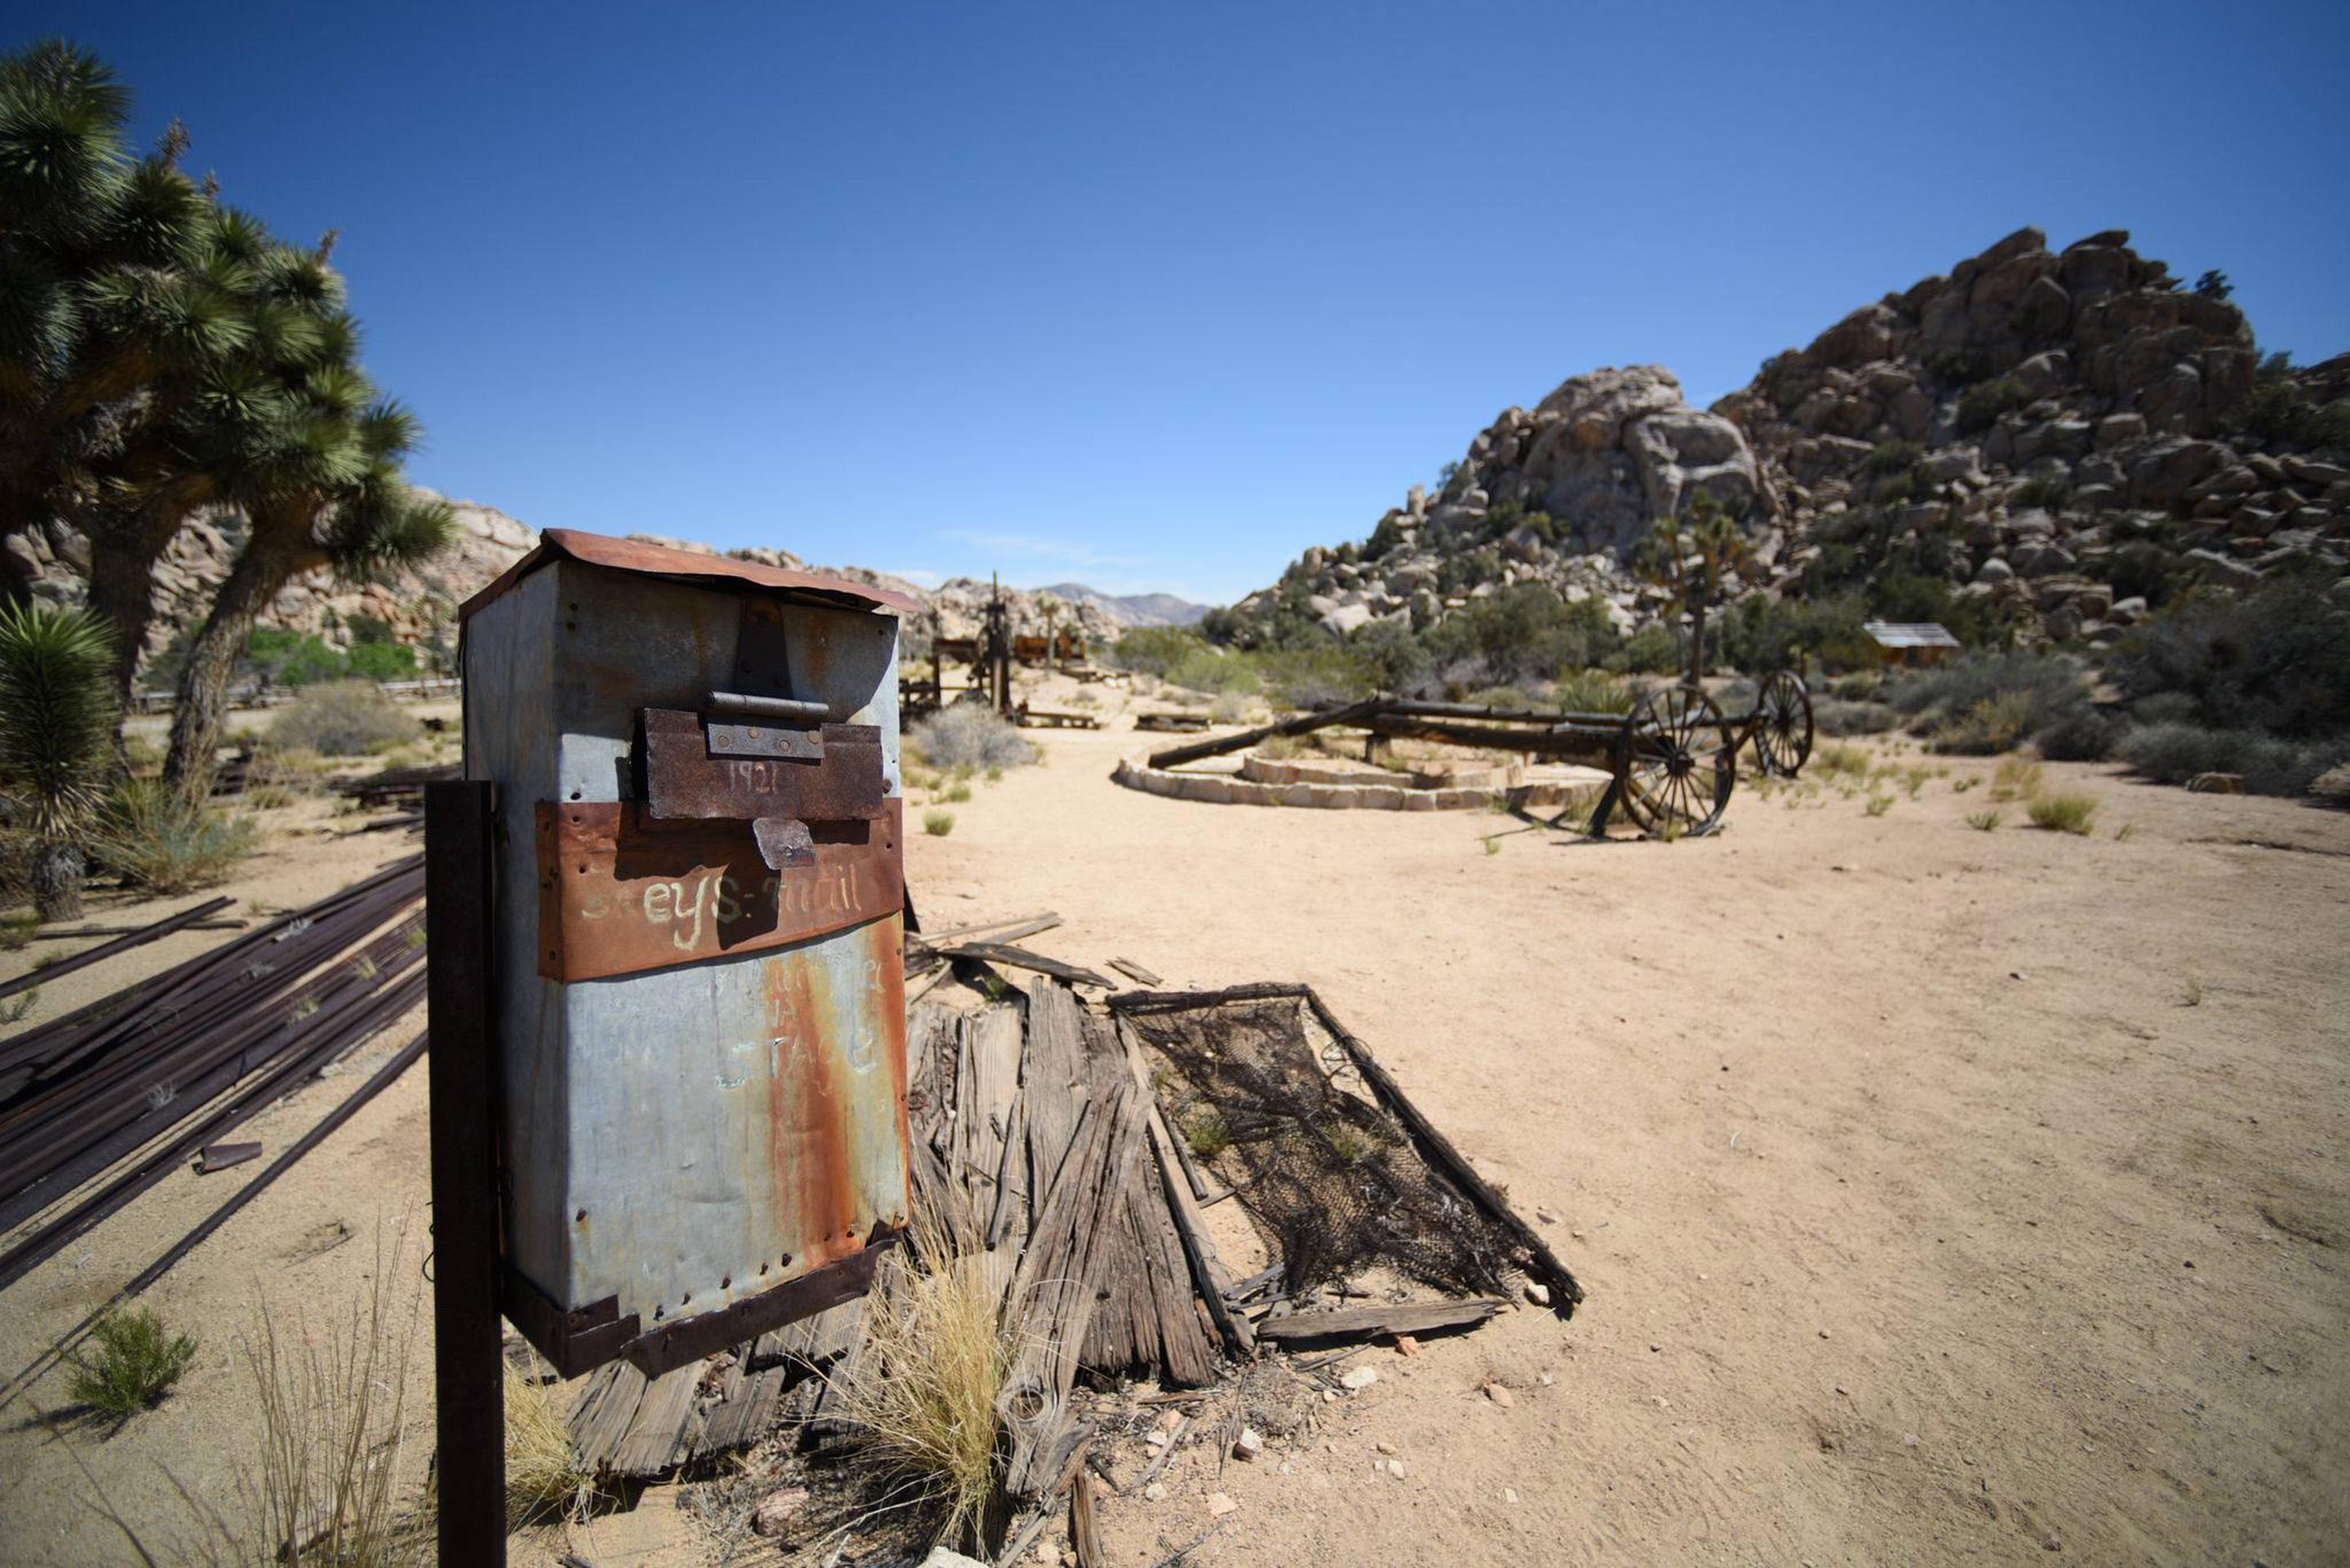 "A rusted tin box stands on a post with the words ""Keys mail"" scratched into the side. In the background there is various rusted ranch equipment.Mail call! How long do you suppose it would take for a letter to arrive at Keys Ranch?"